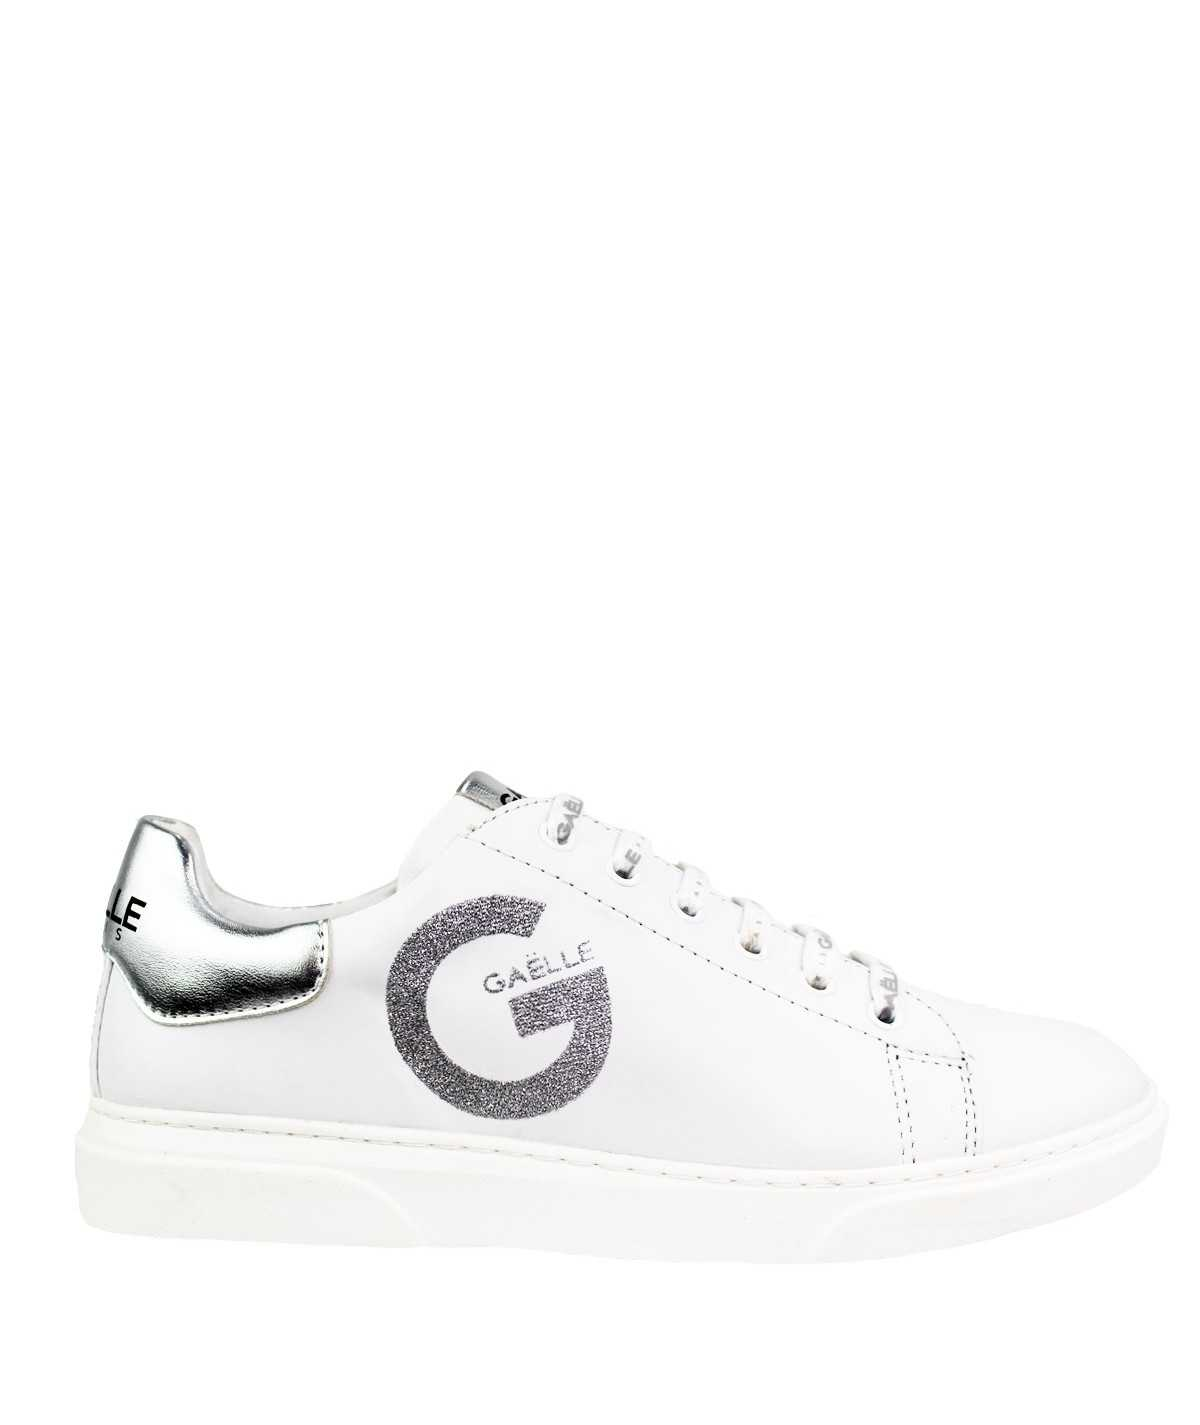 GAËLLE Sneakers Donna